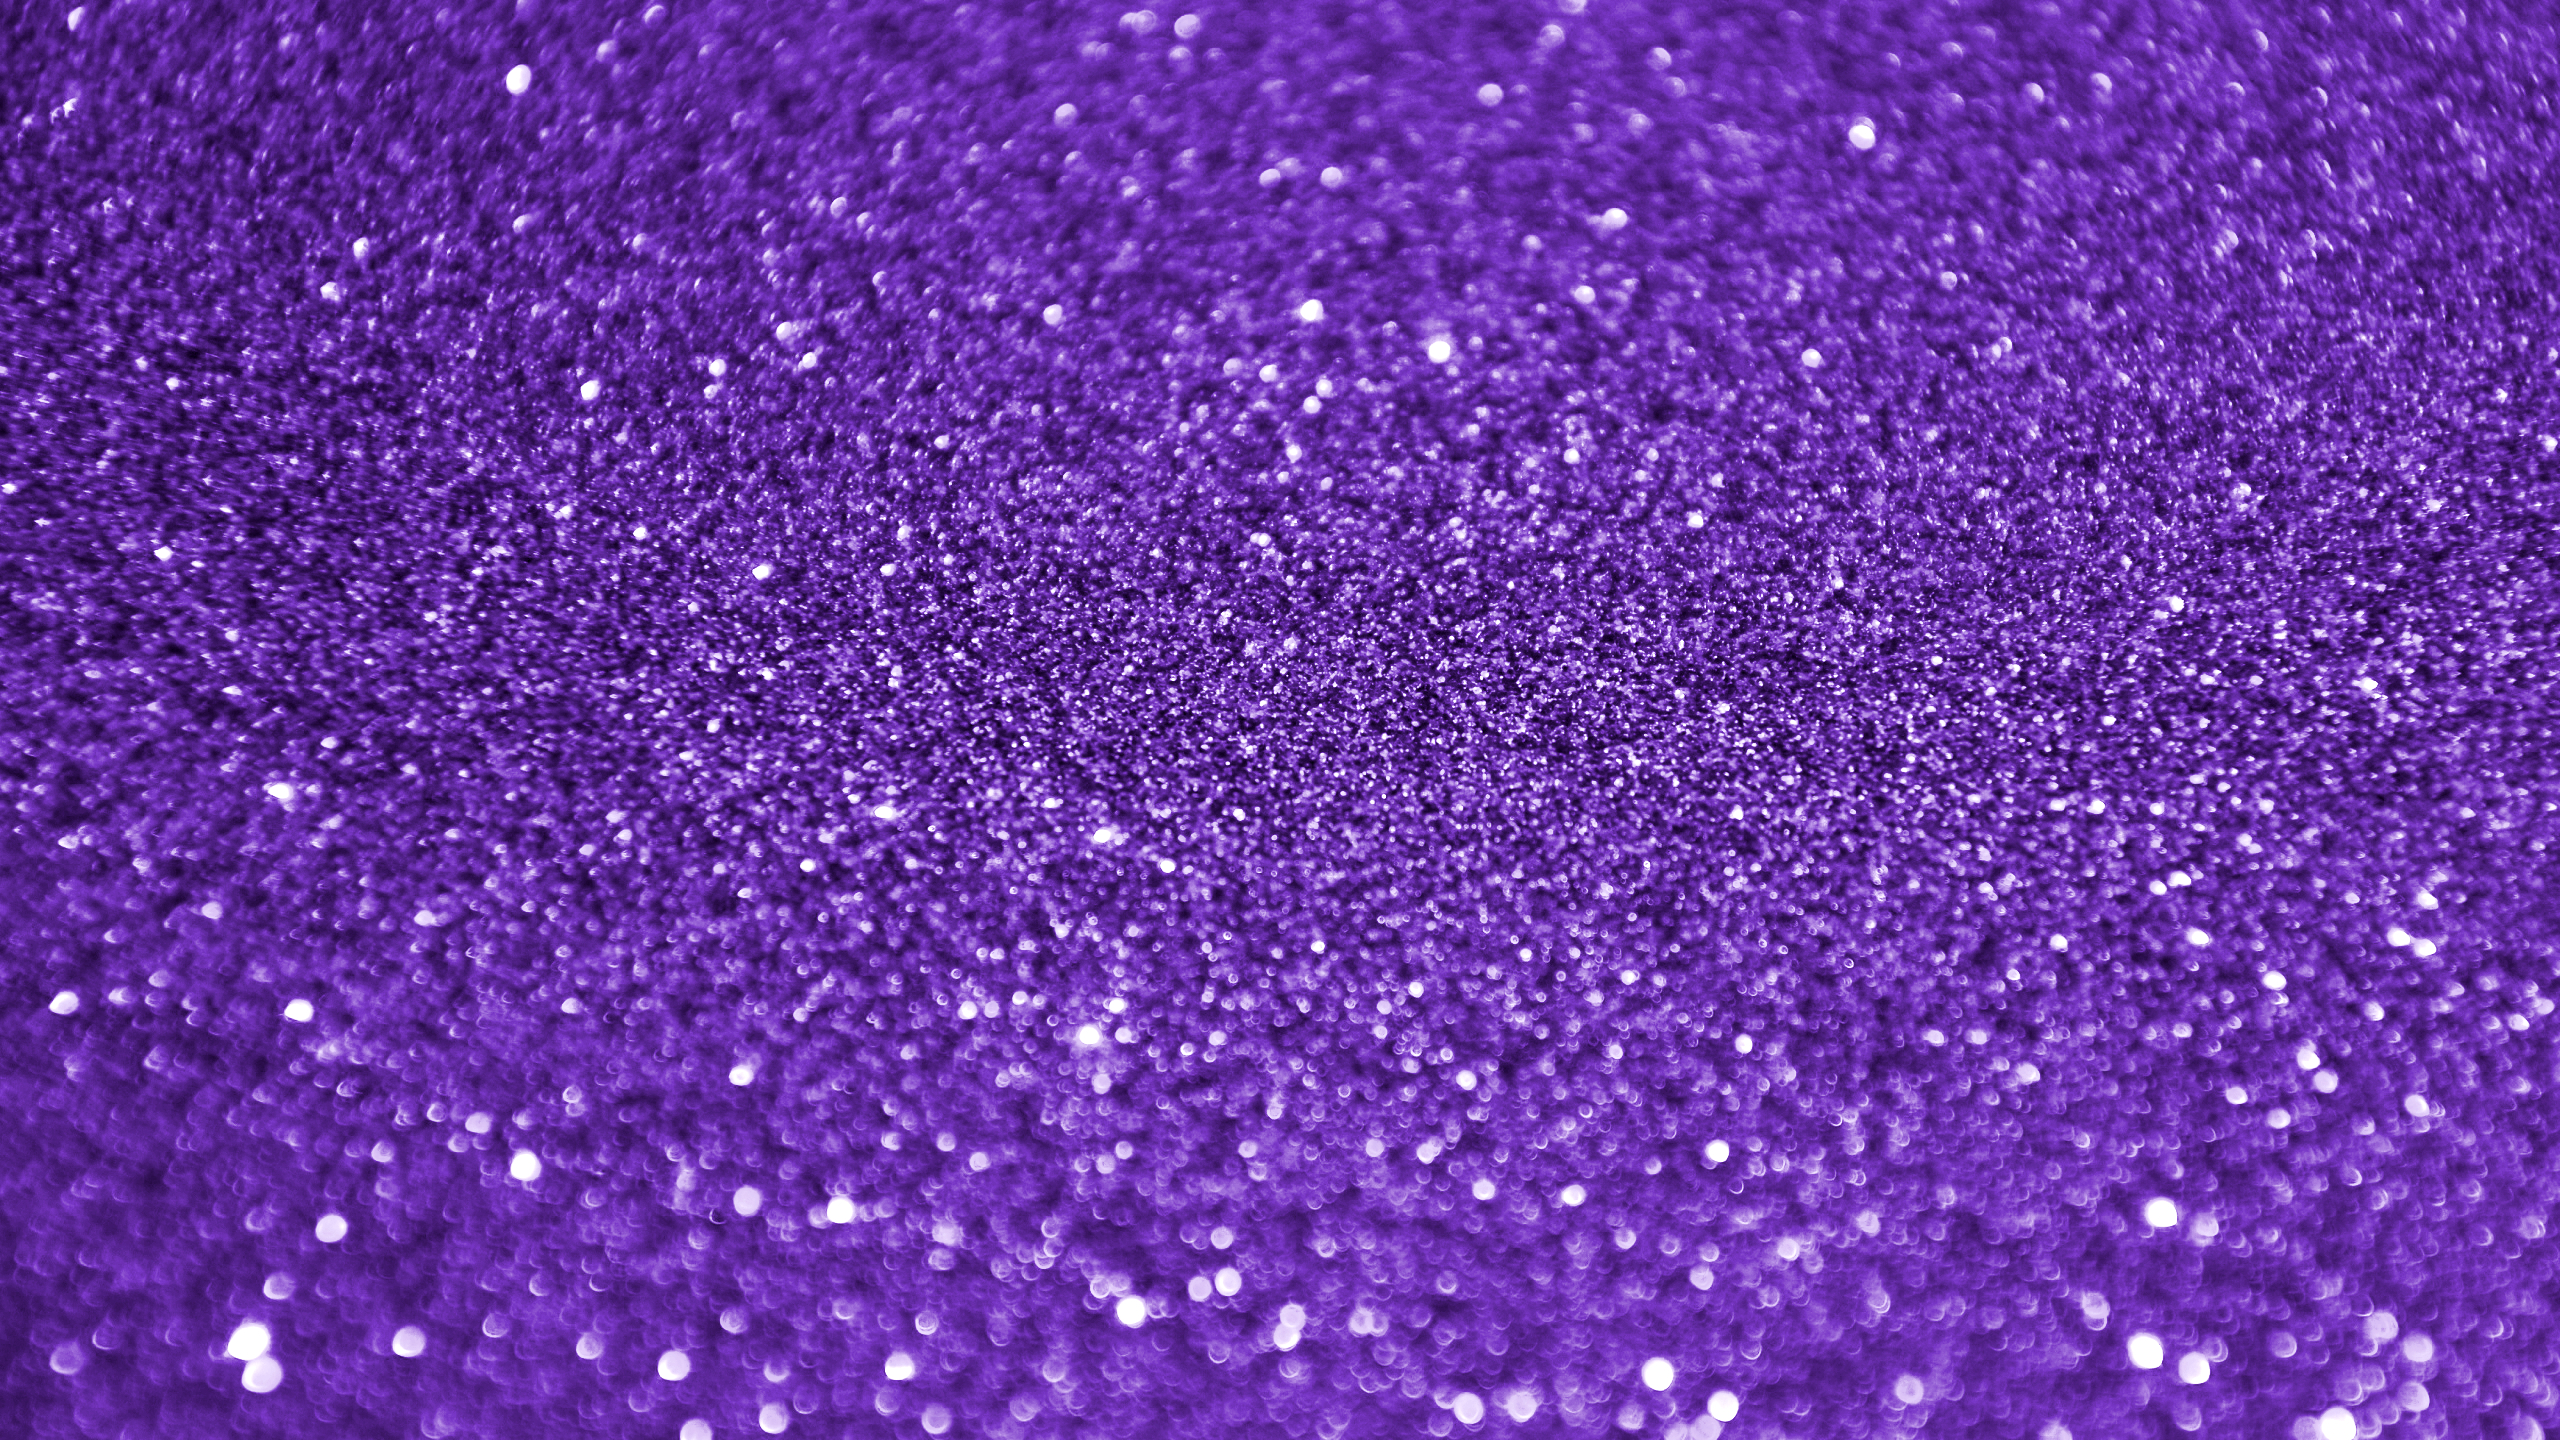 Glitter and colors barbaras hd wallpapers - Purple glitter wallpaper hd ...